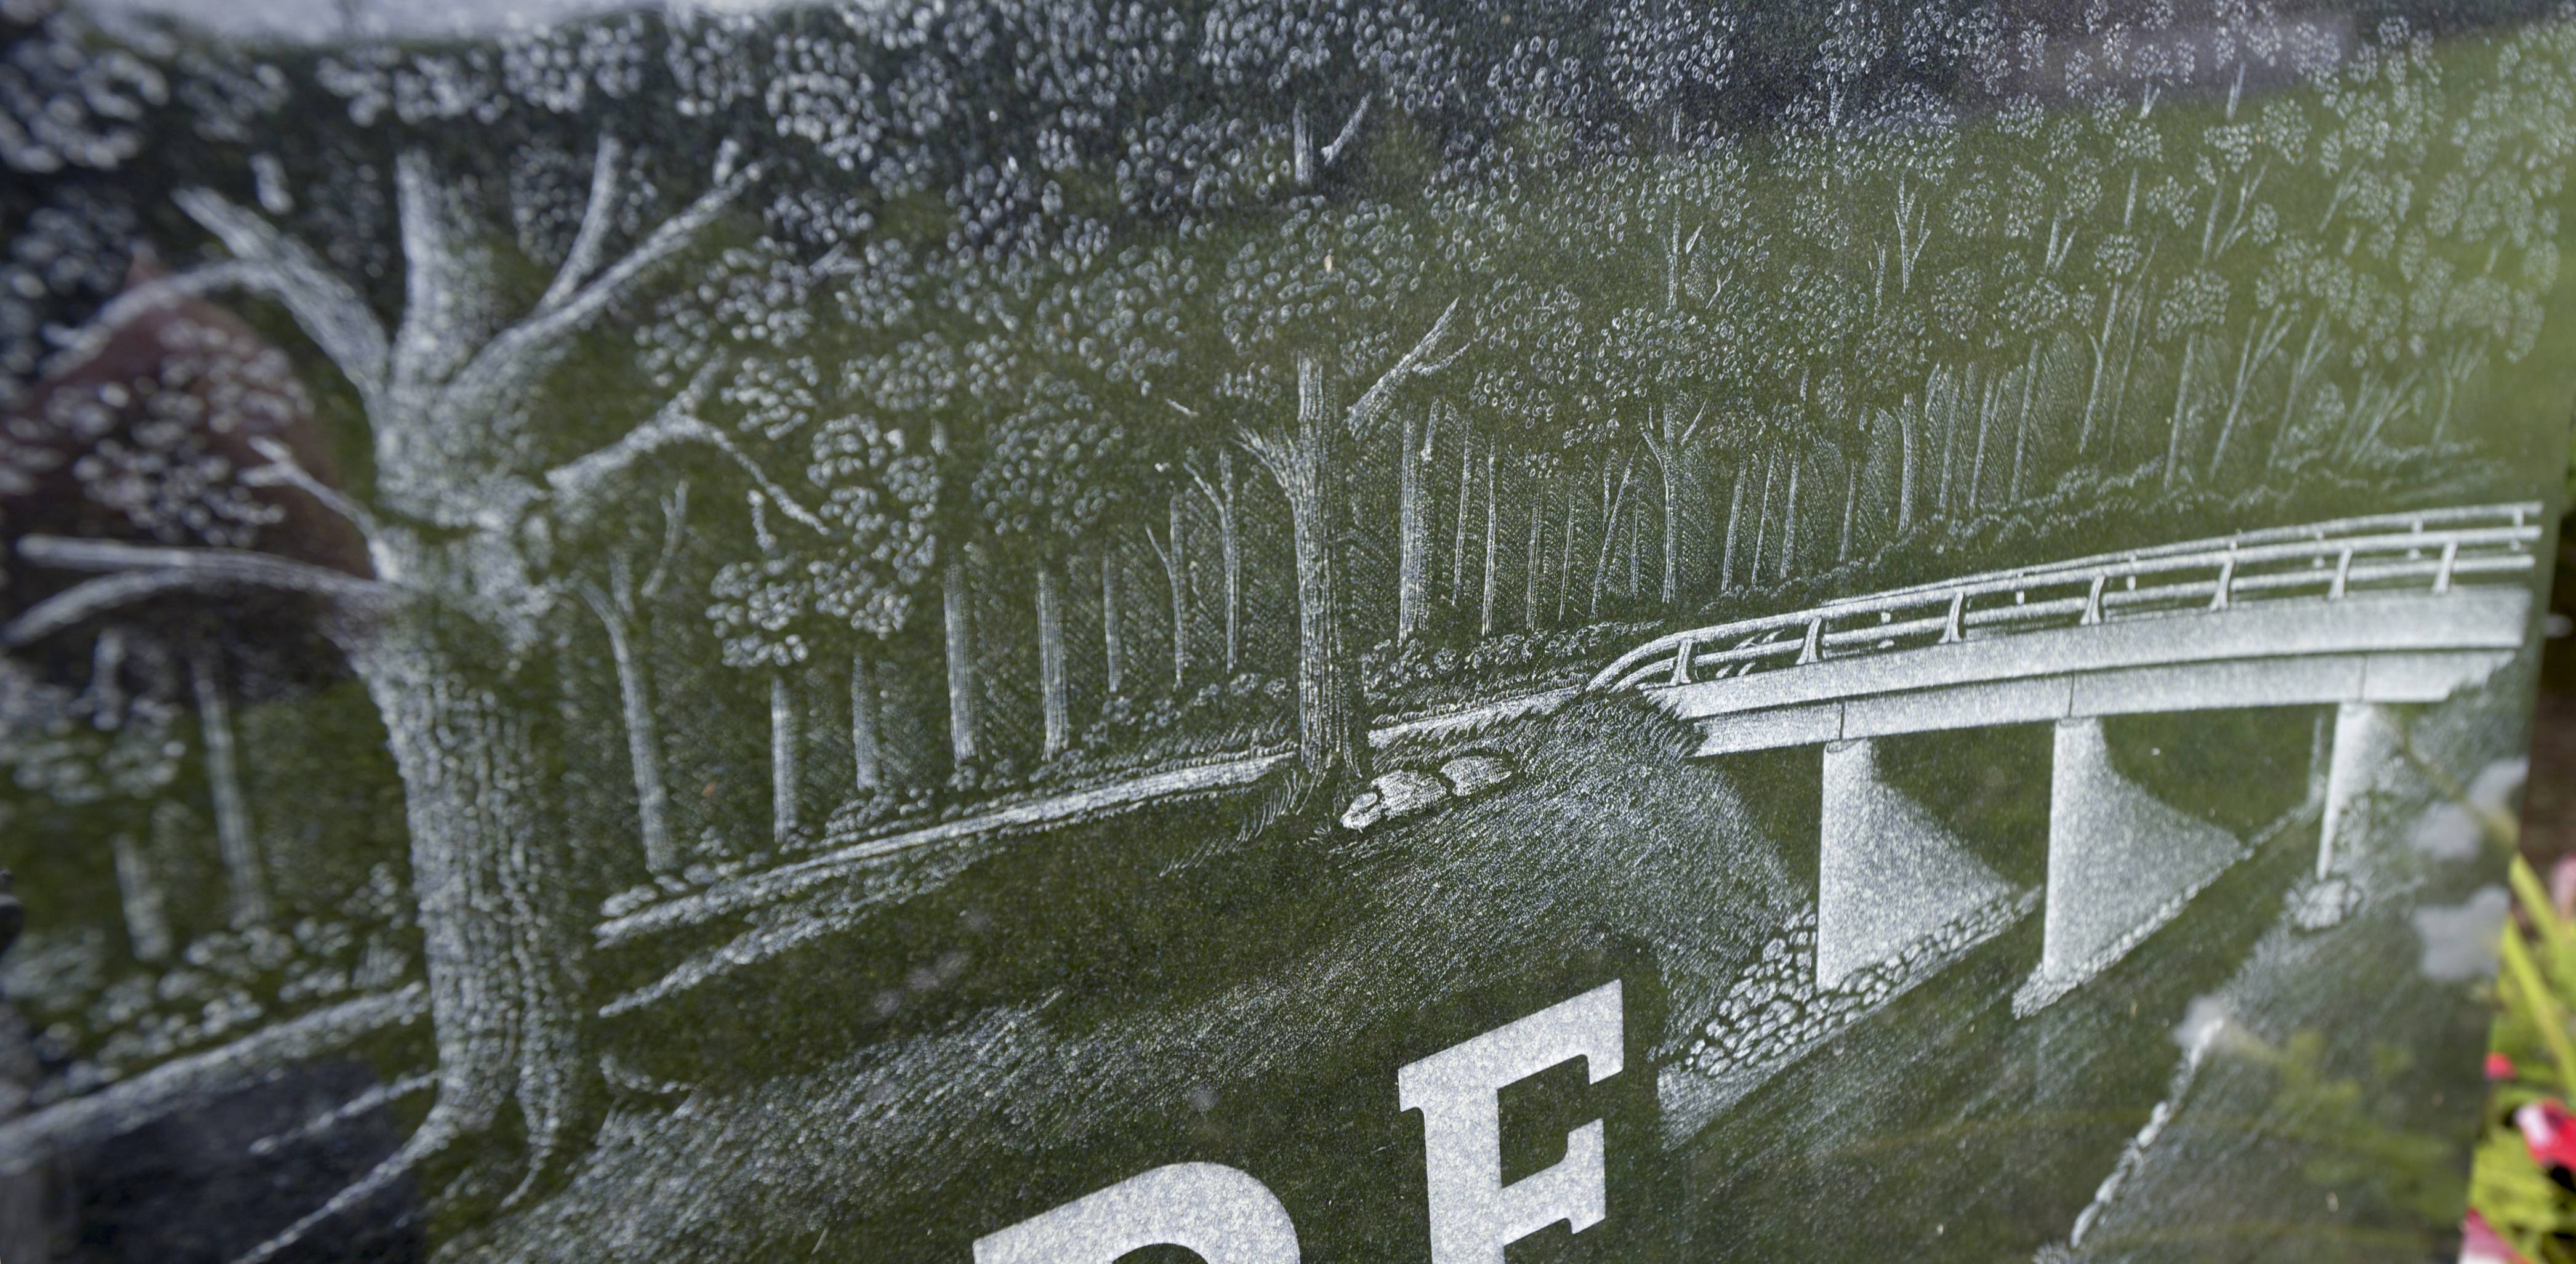 Jim Shoaf etched this nature scene and bridge on a marker at the request of a widow whose husband was a bridge builder.